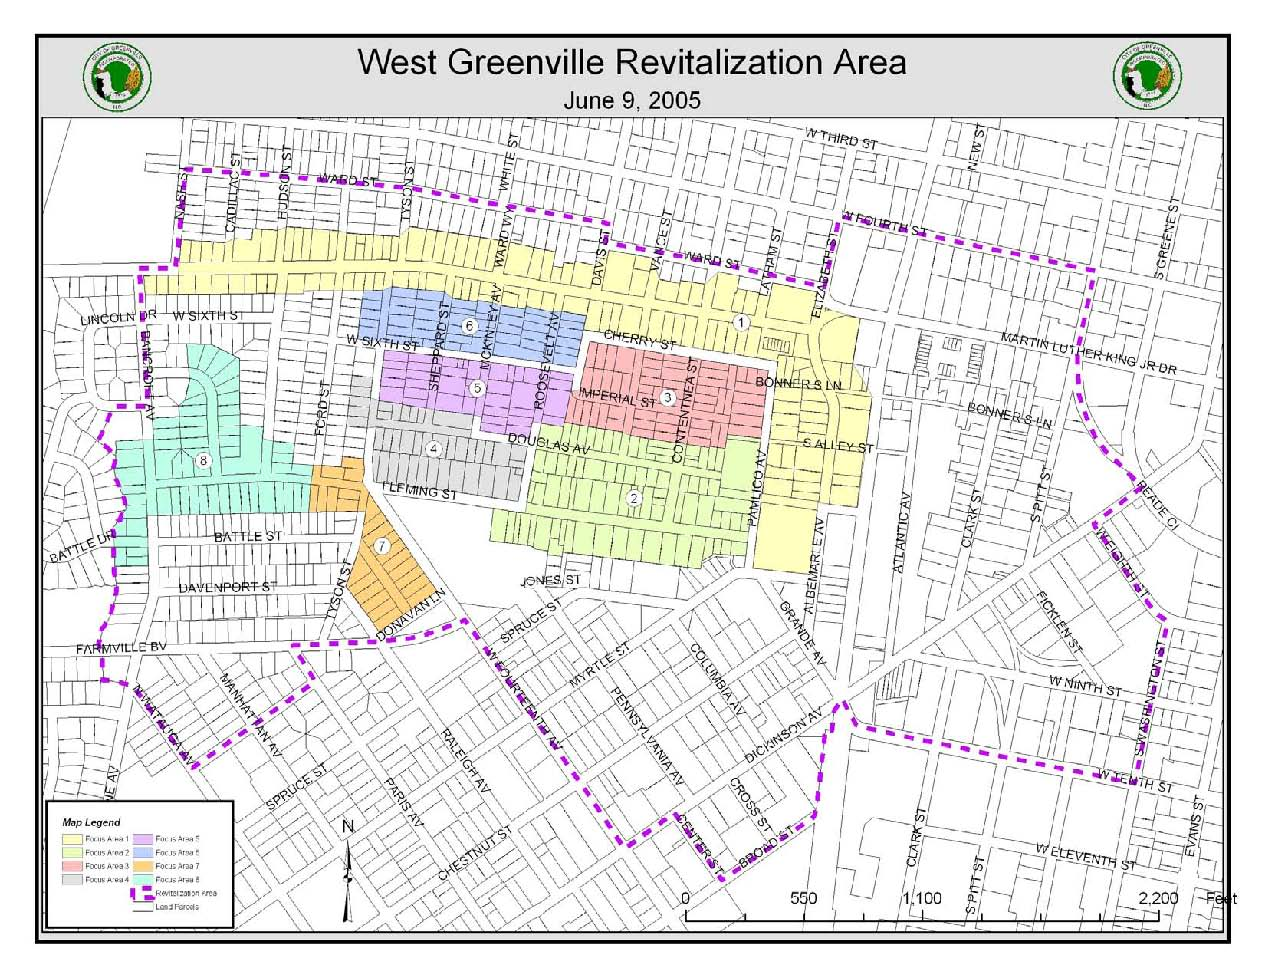 Downtown Greenville Revitalization Area